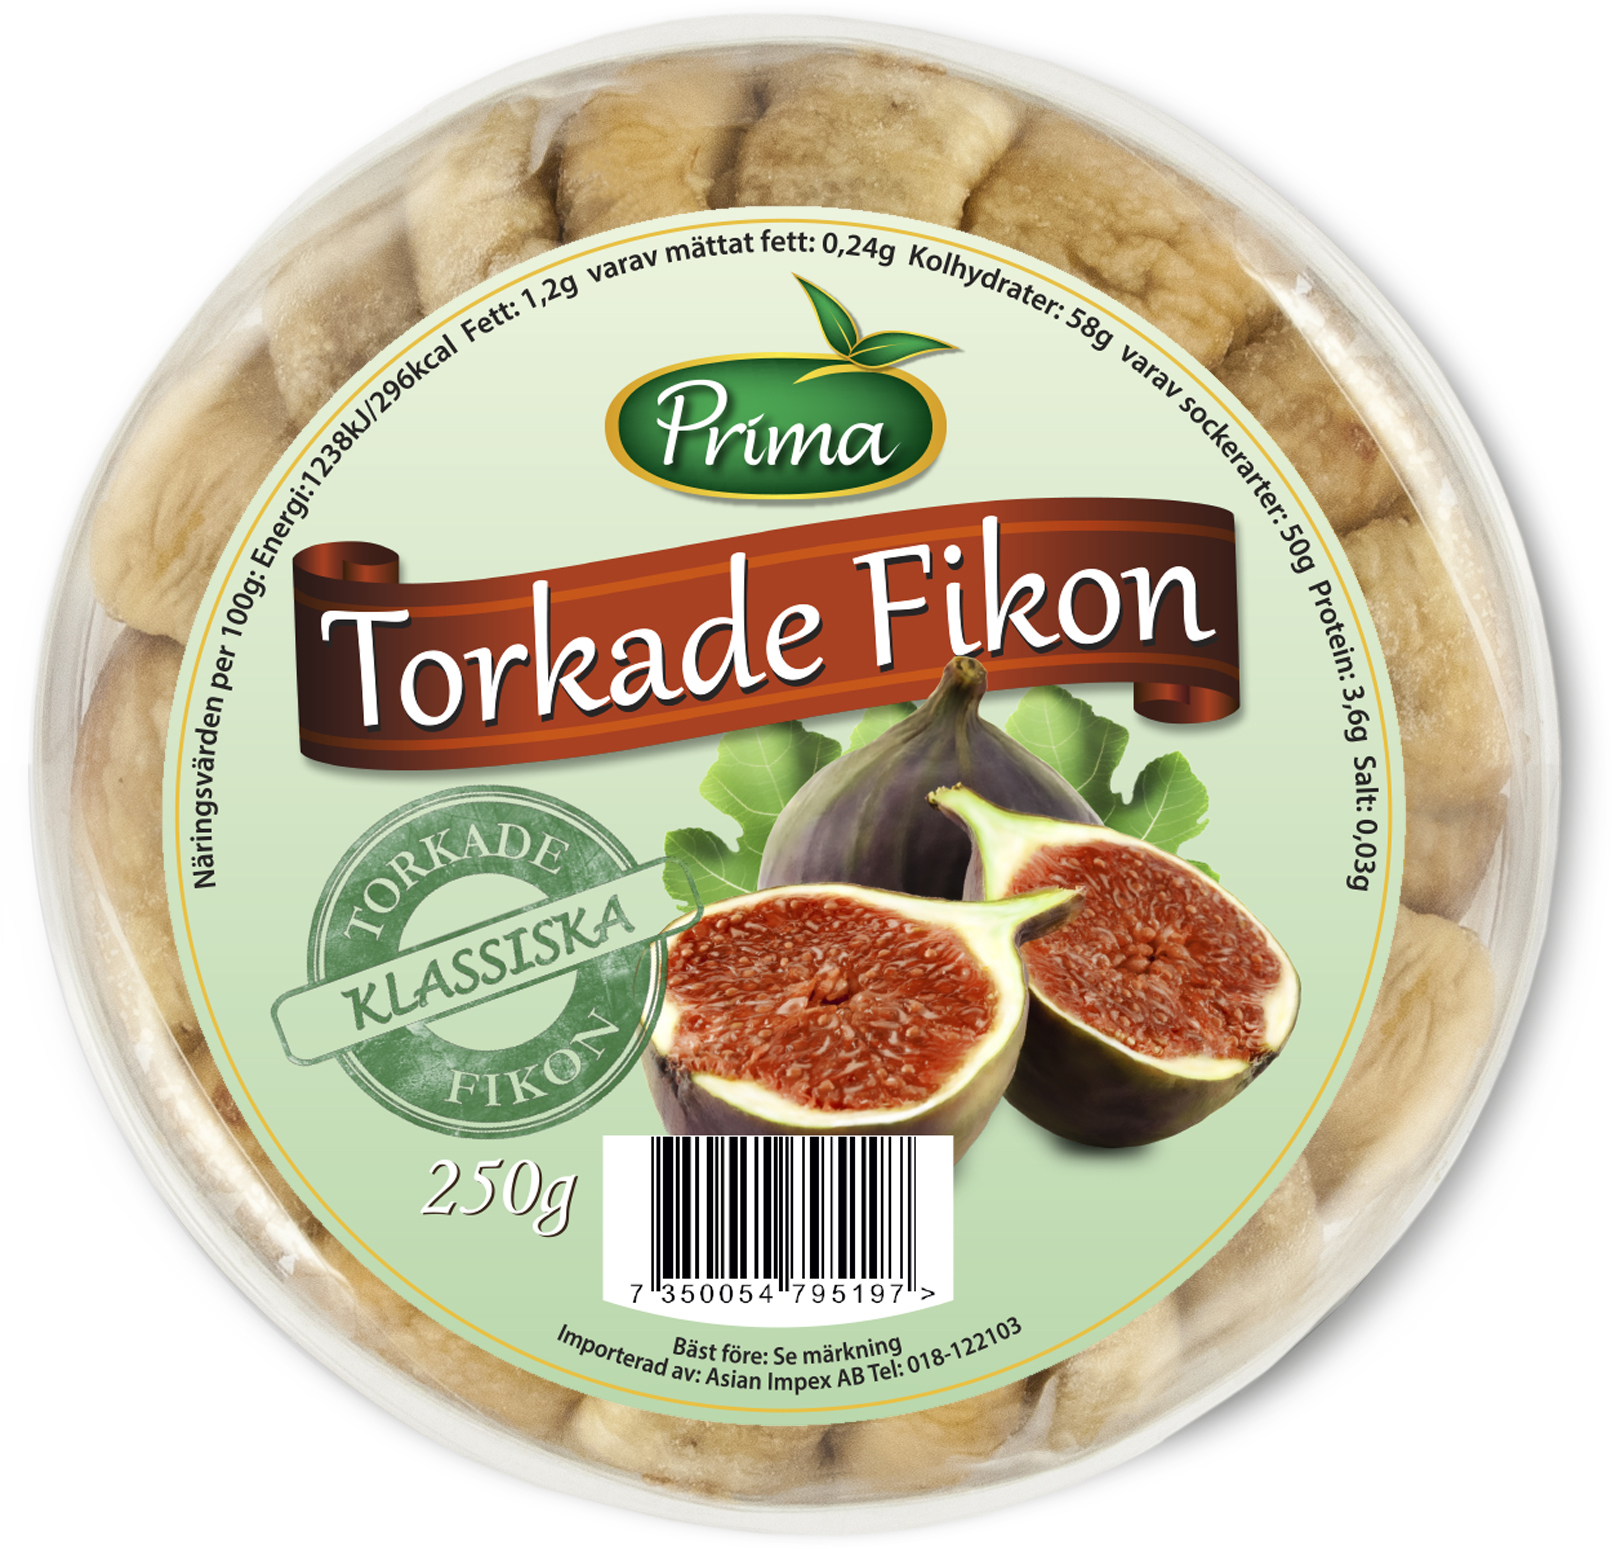 Dried figs - Dried figs in a practical and resealable packaging that keeps the figs soft for a longer time. 250gIngredients:FigsNutritional value per 100gEnergy 296 kcal / 1238 kJFat 1.2g, of which saturated fat is 0.24gCarbohydrates 58g, of which sugars are 50gProtein 3.6gSalt 0.03g